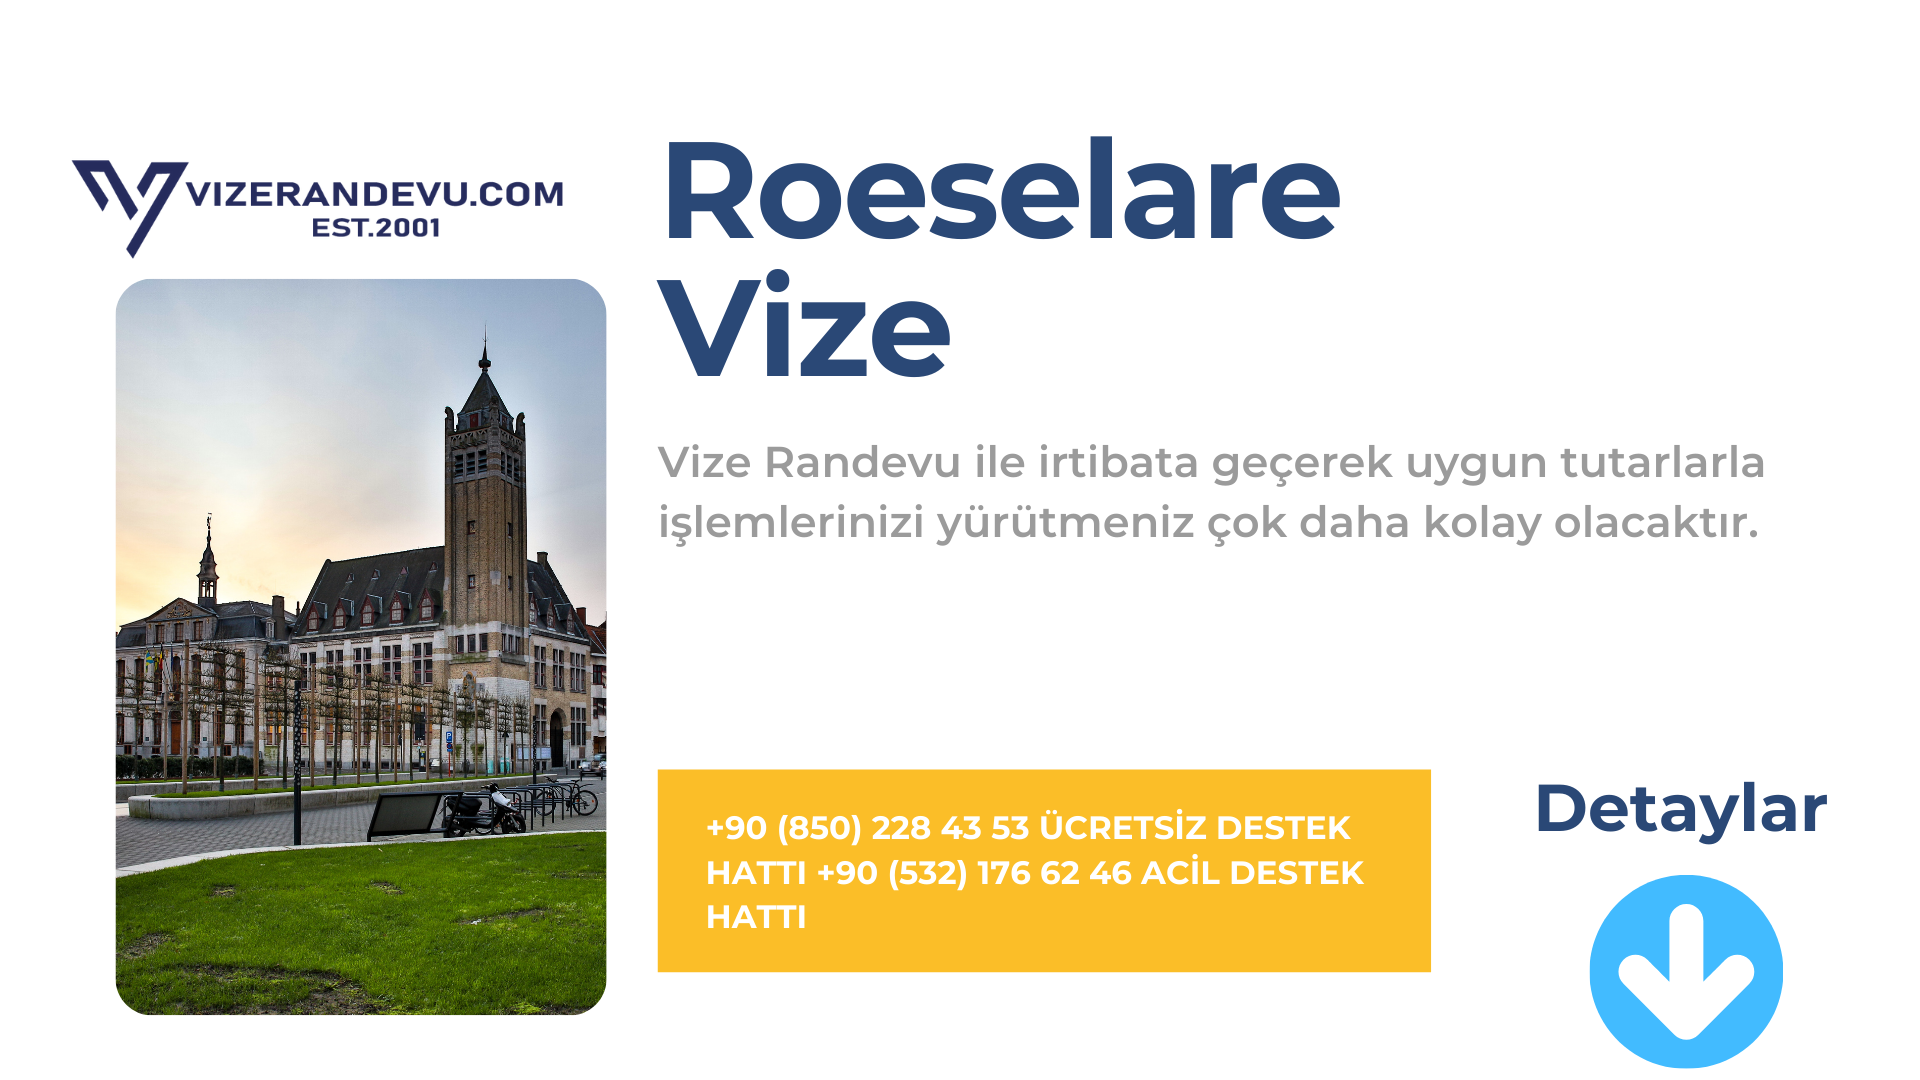 Roeselare Vize